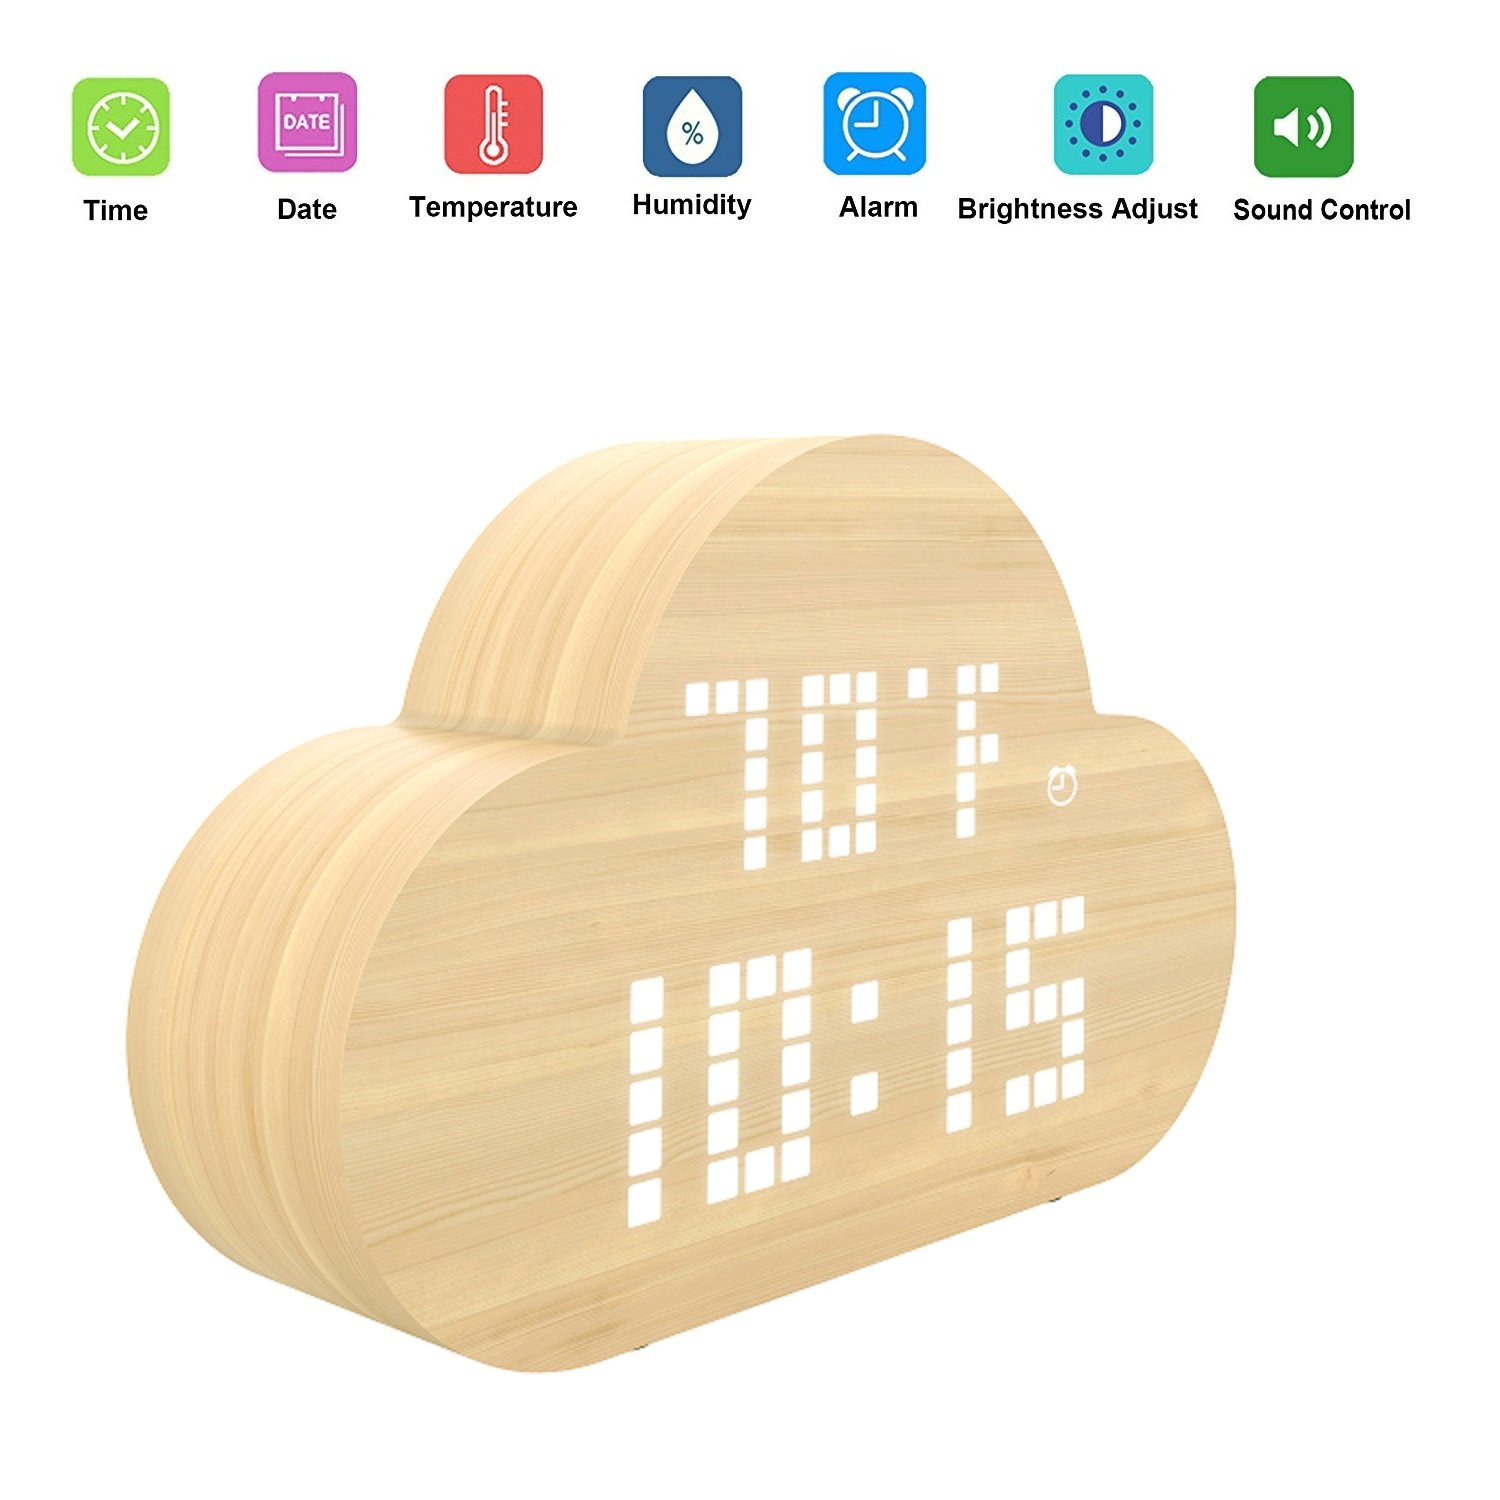 Digital Alarm Clock, ALED LIGHT Wood LED Alarm Clock Adjustable Light Temperature and Humidity Display USB Charging Cloud Desk Clock Applying Voice Control Function with Advance Seamless Appearance, Ideal Timer for Bedroom/ Living Room/ Library LUXONIC